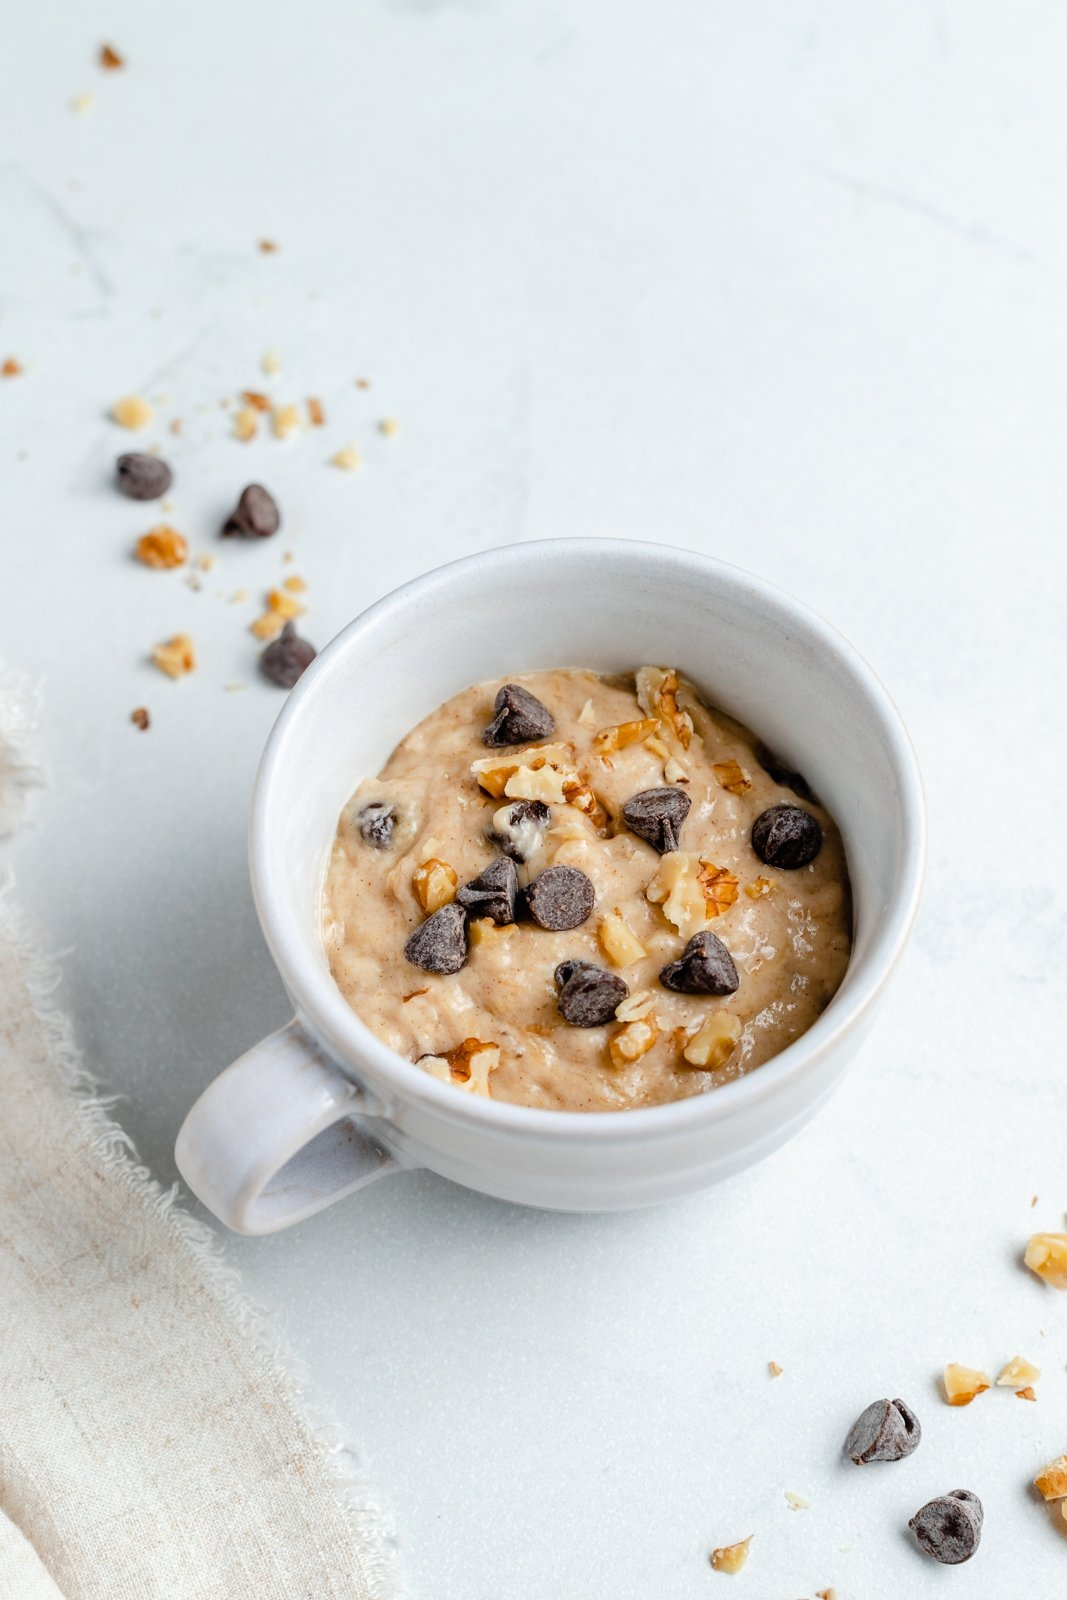 unbaked vegan banana bread mug cake topped with chocolate chips